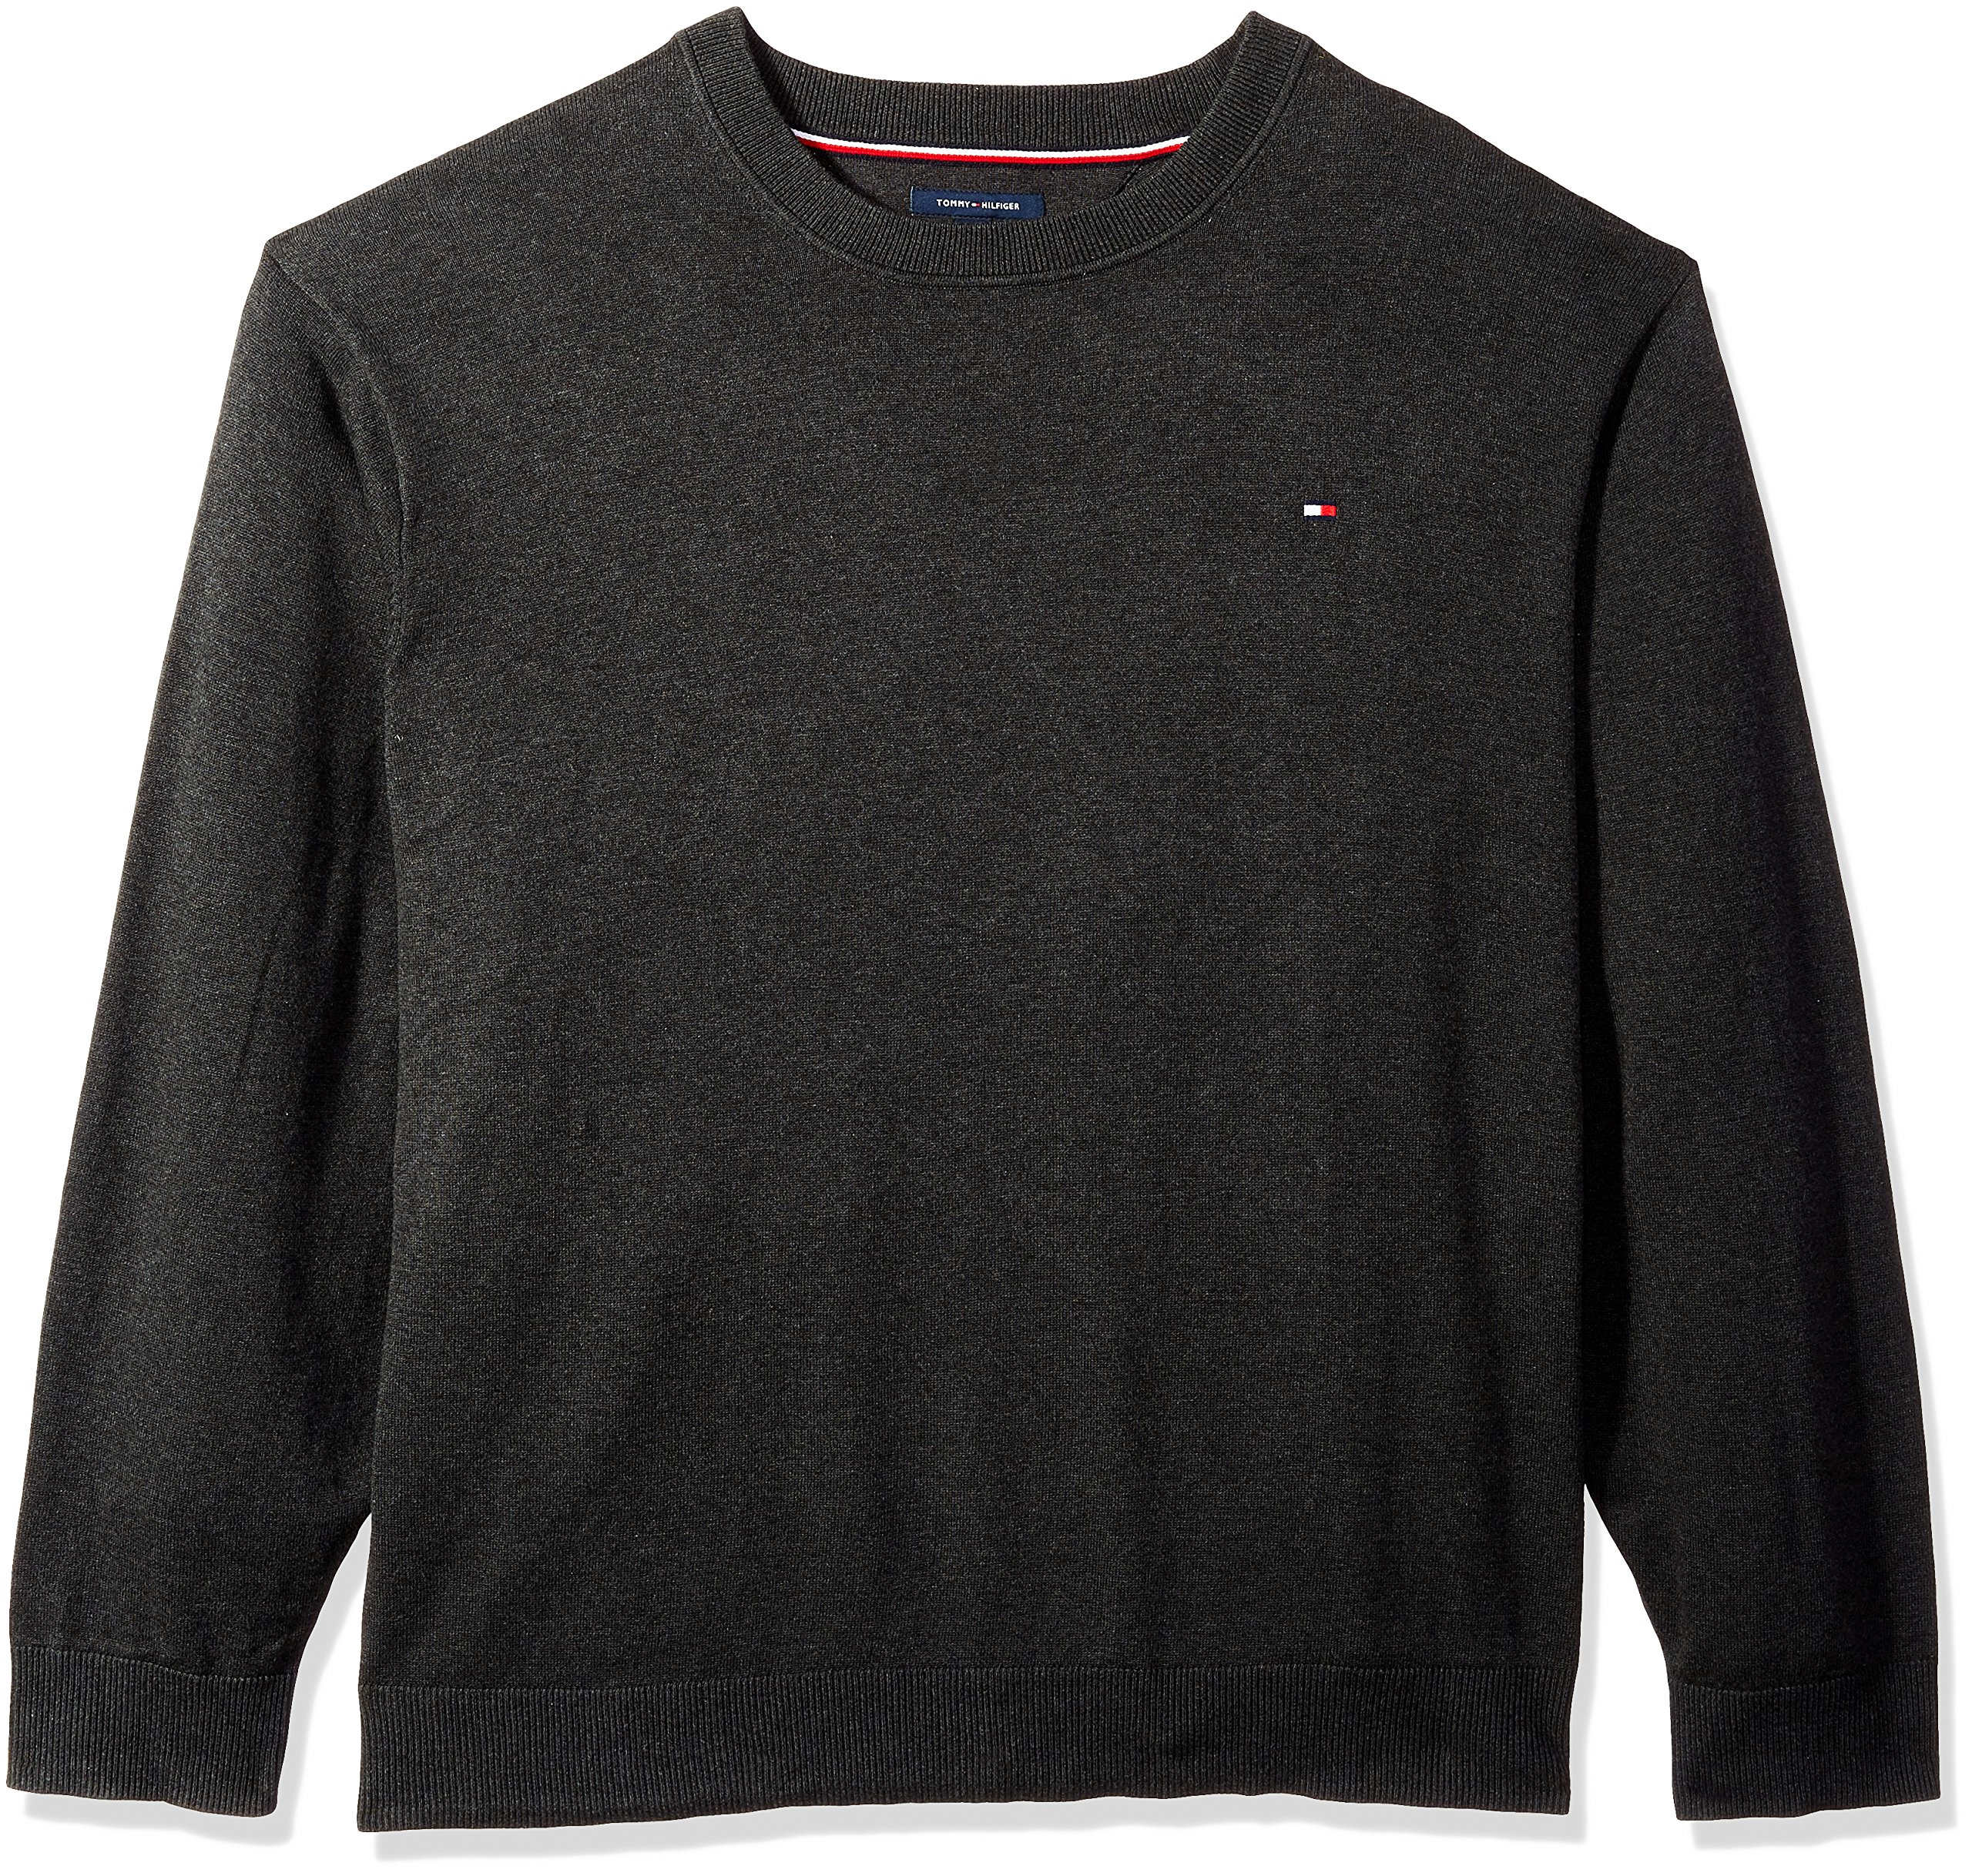 Tommy Hilfiger Men's Big and Tall Sweater Signature Solid Crewneck, Charcoal Grey Heather, BG-3XL